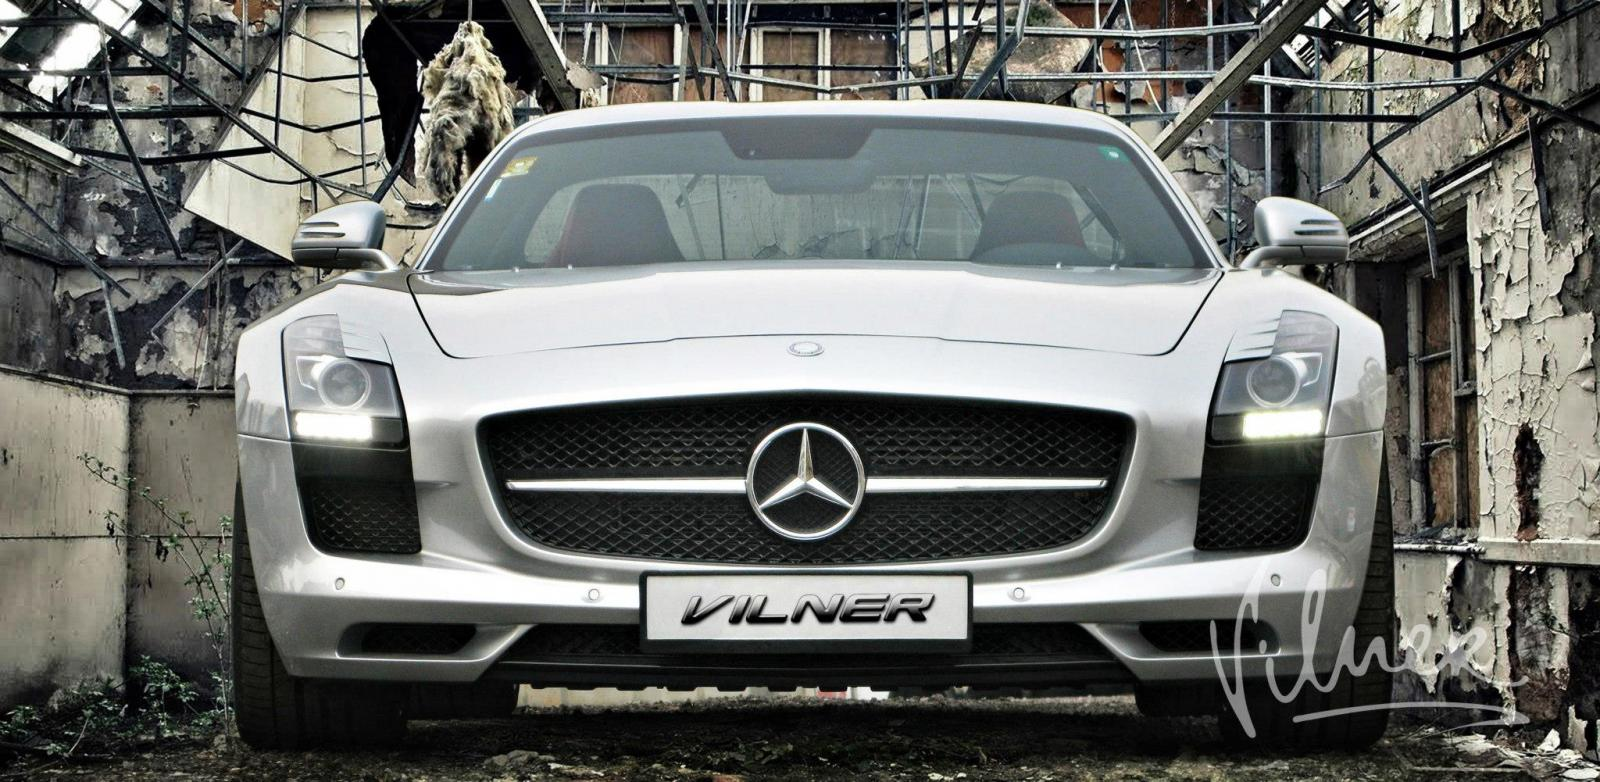 Mercedes-Benz SLS AMG GT With Upgraded Interior by Vilner - GTspirit